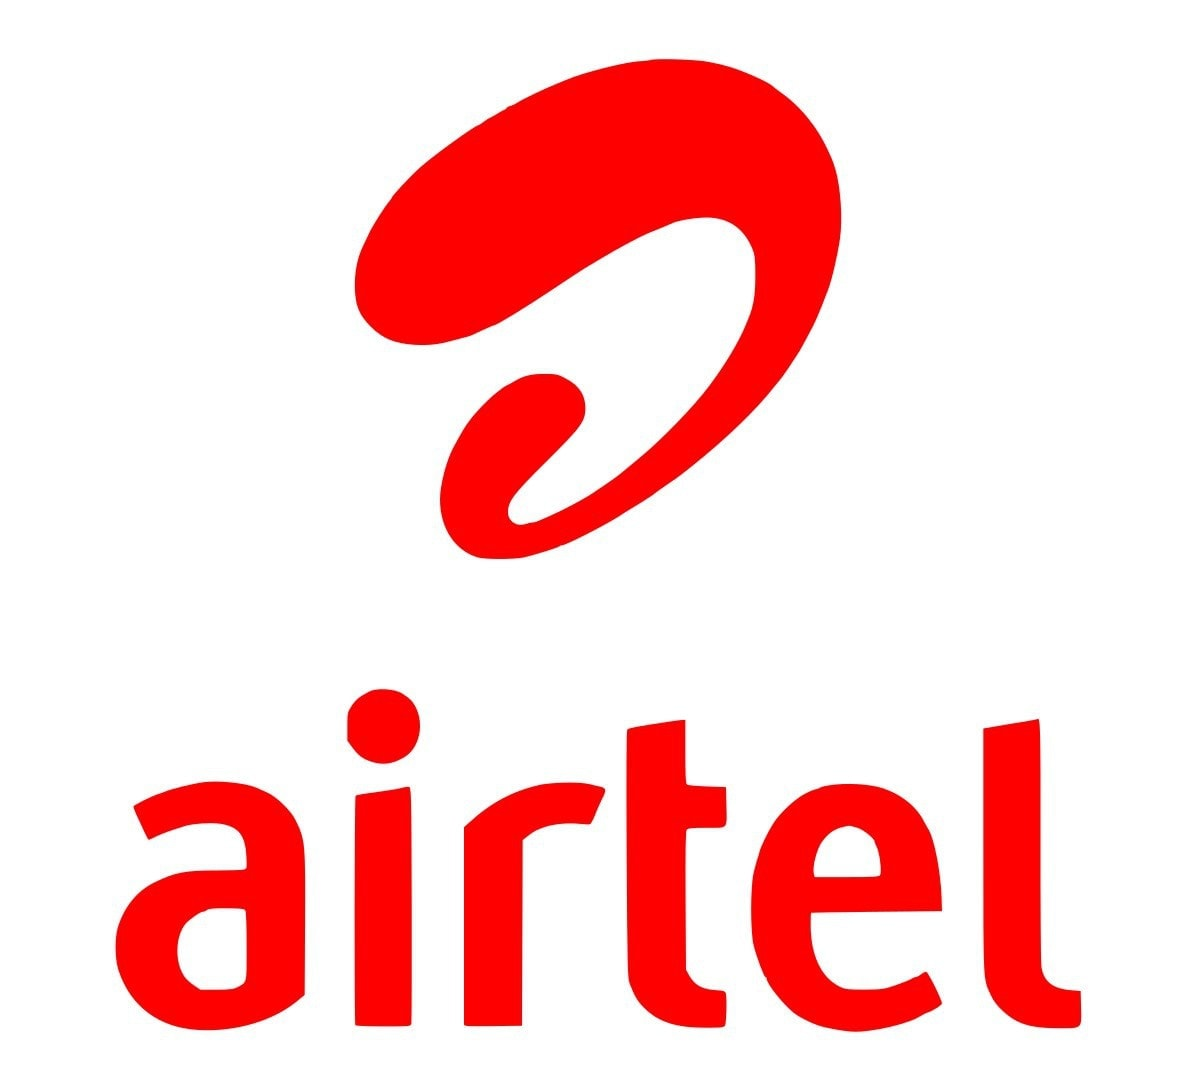 Airtel Rebranding – Was it needed?